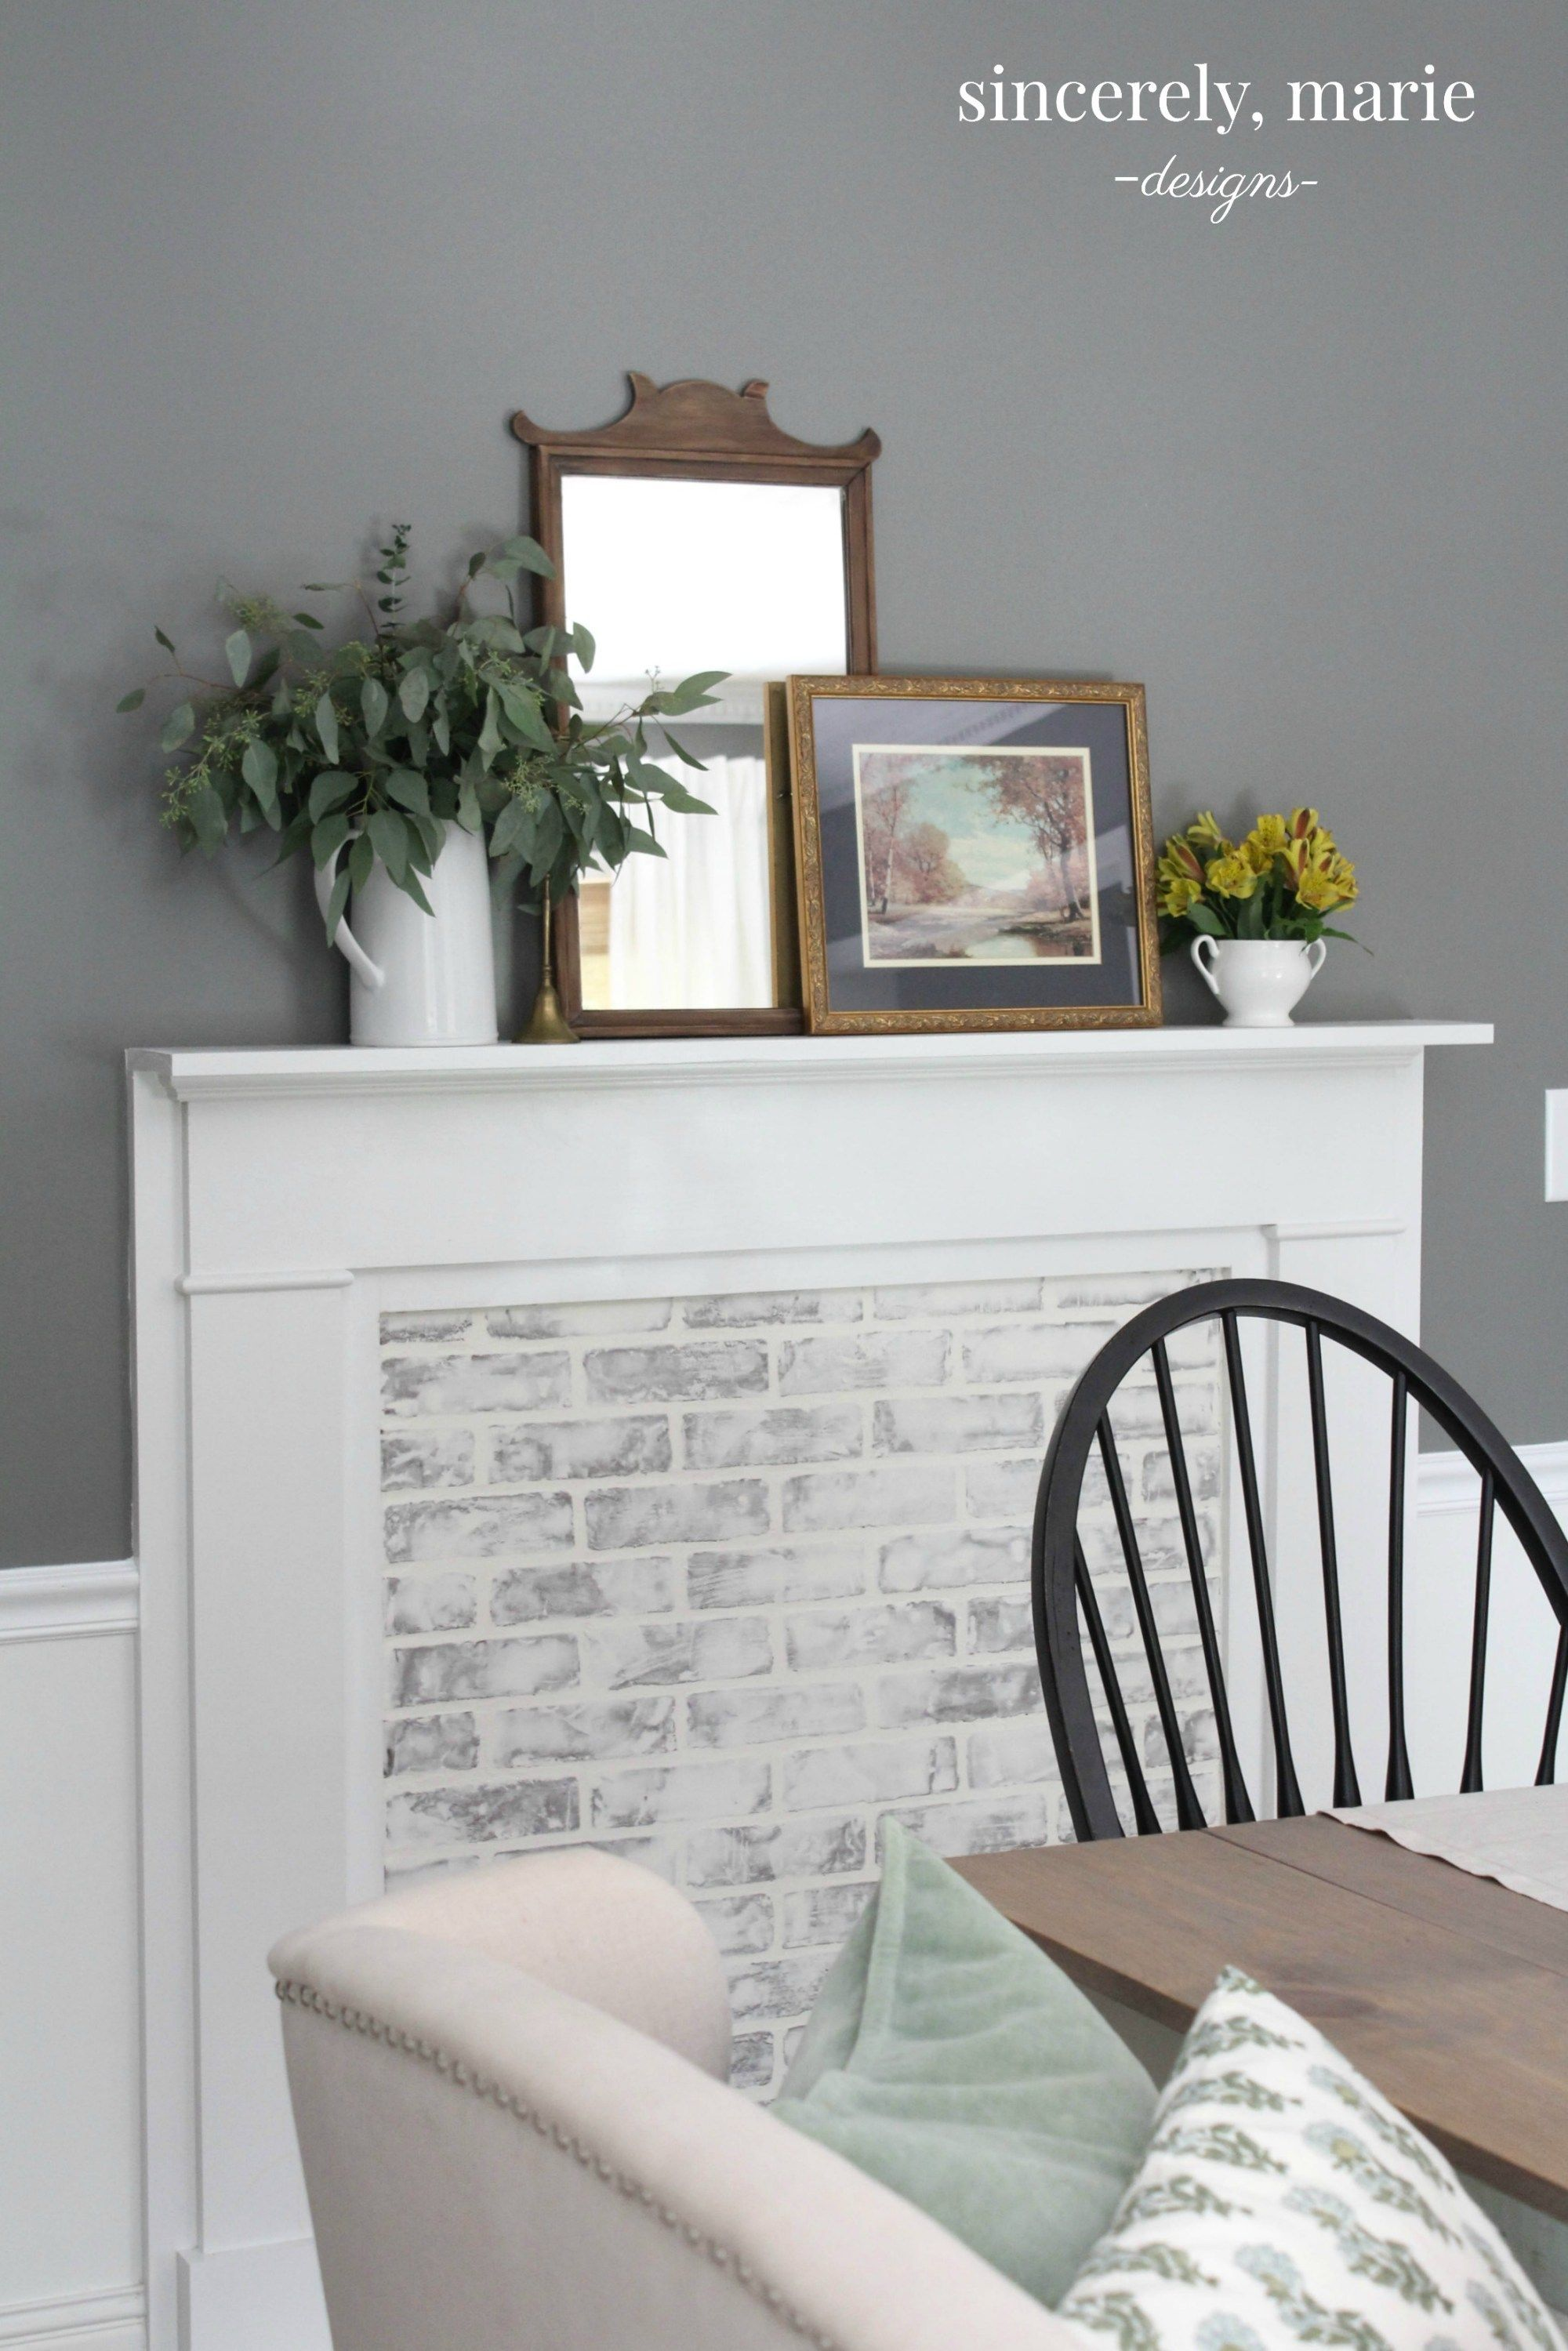 Diy faux fireplace u german smear fireplacesurround fireplace